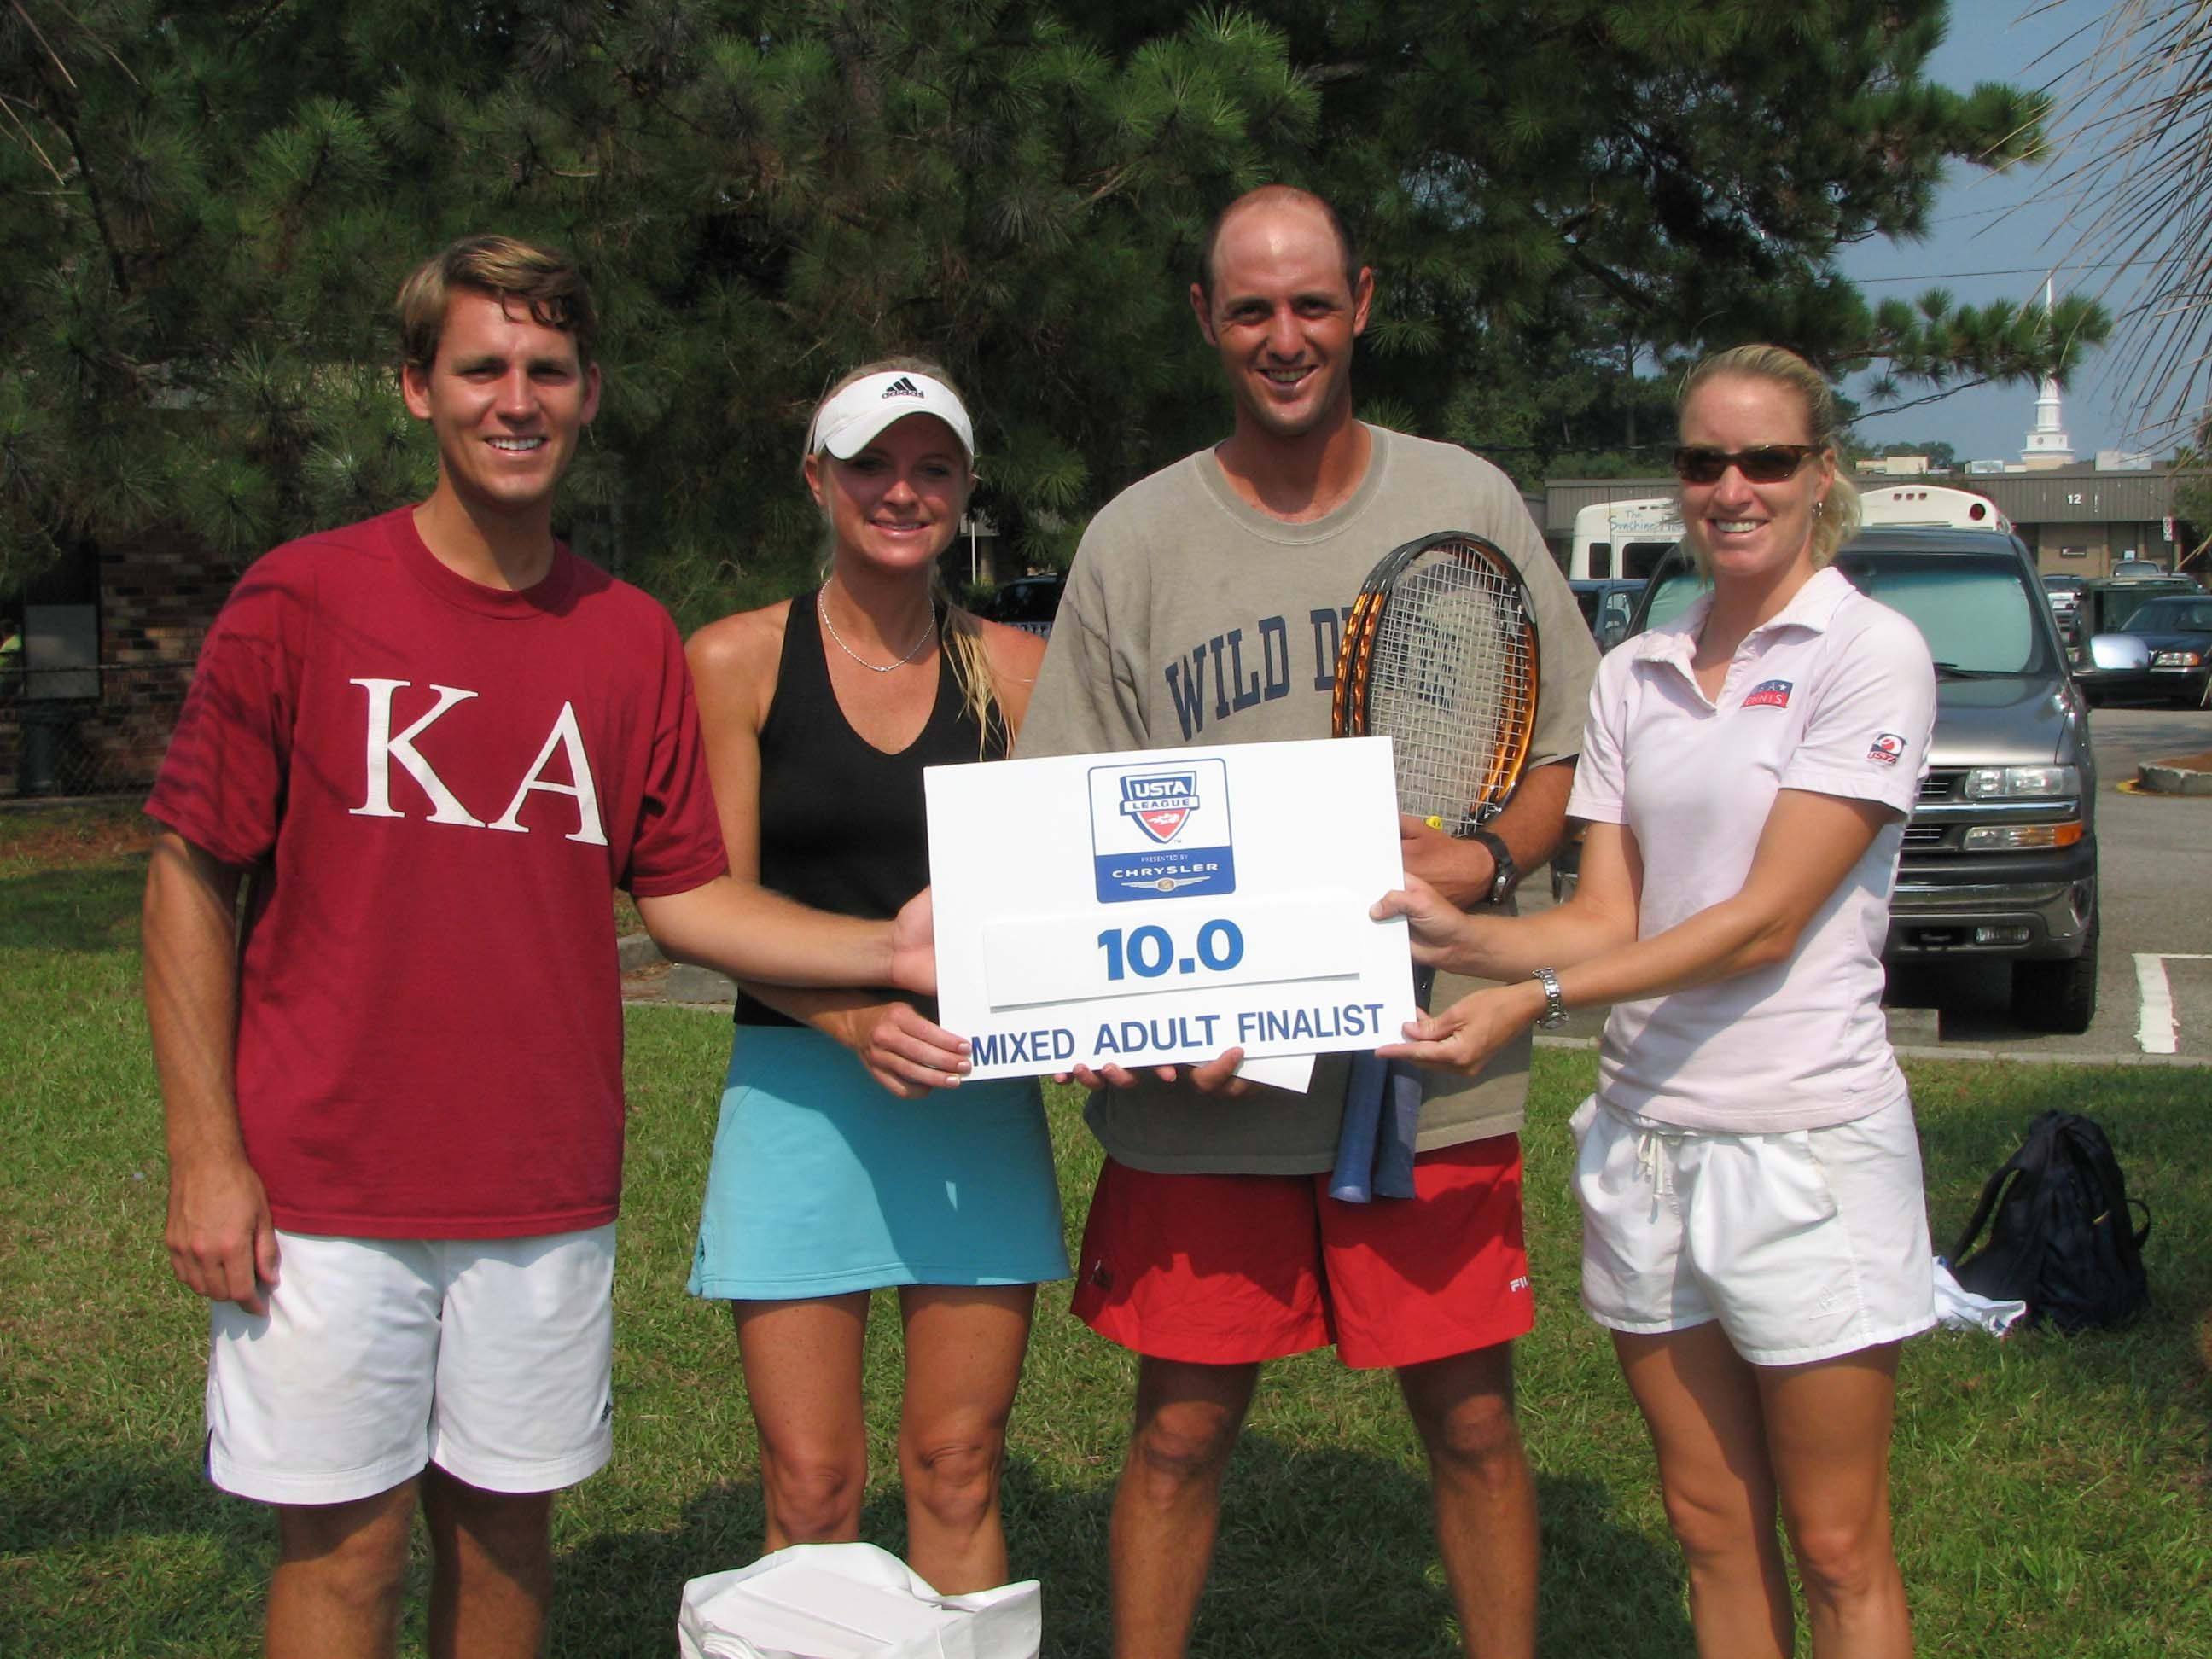 2006 Mixed 10 Adult Finalist